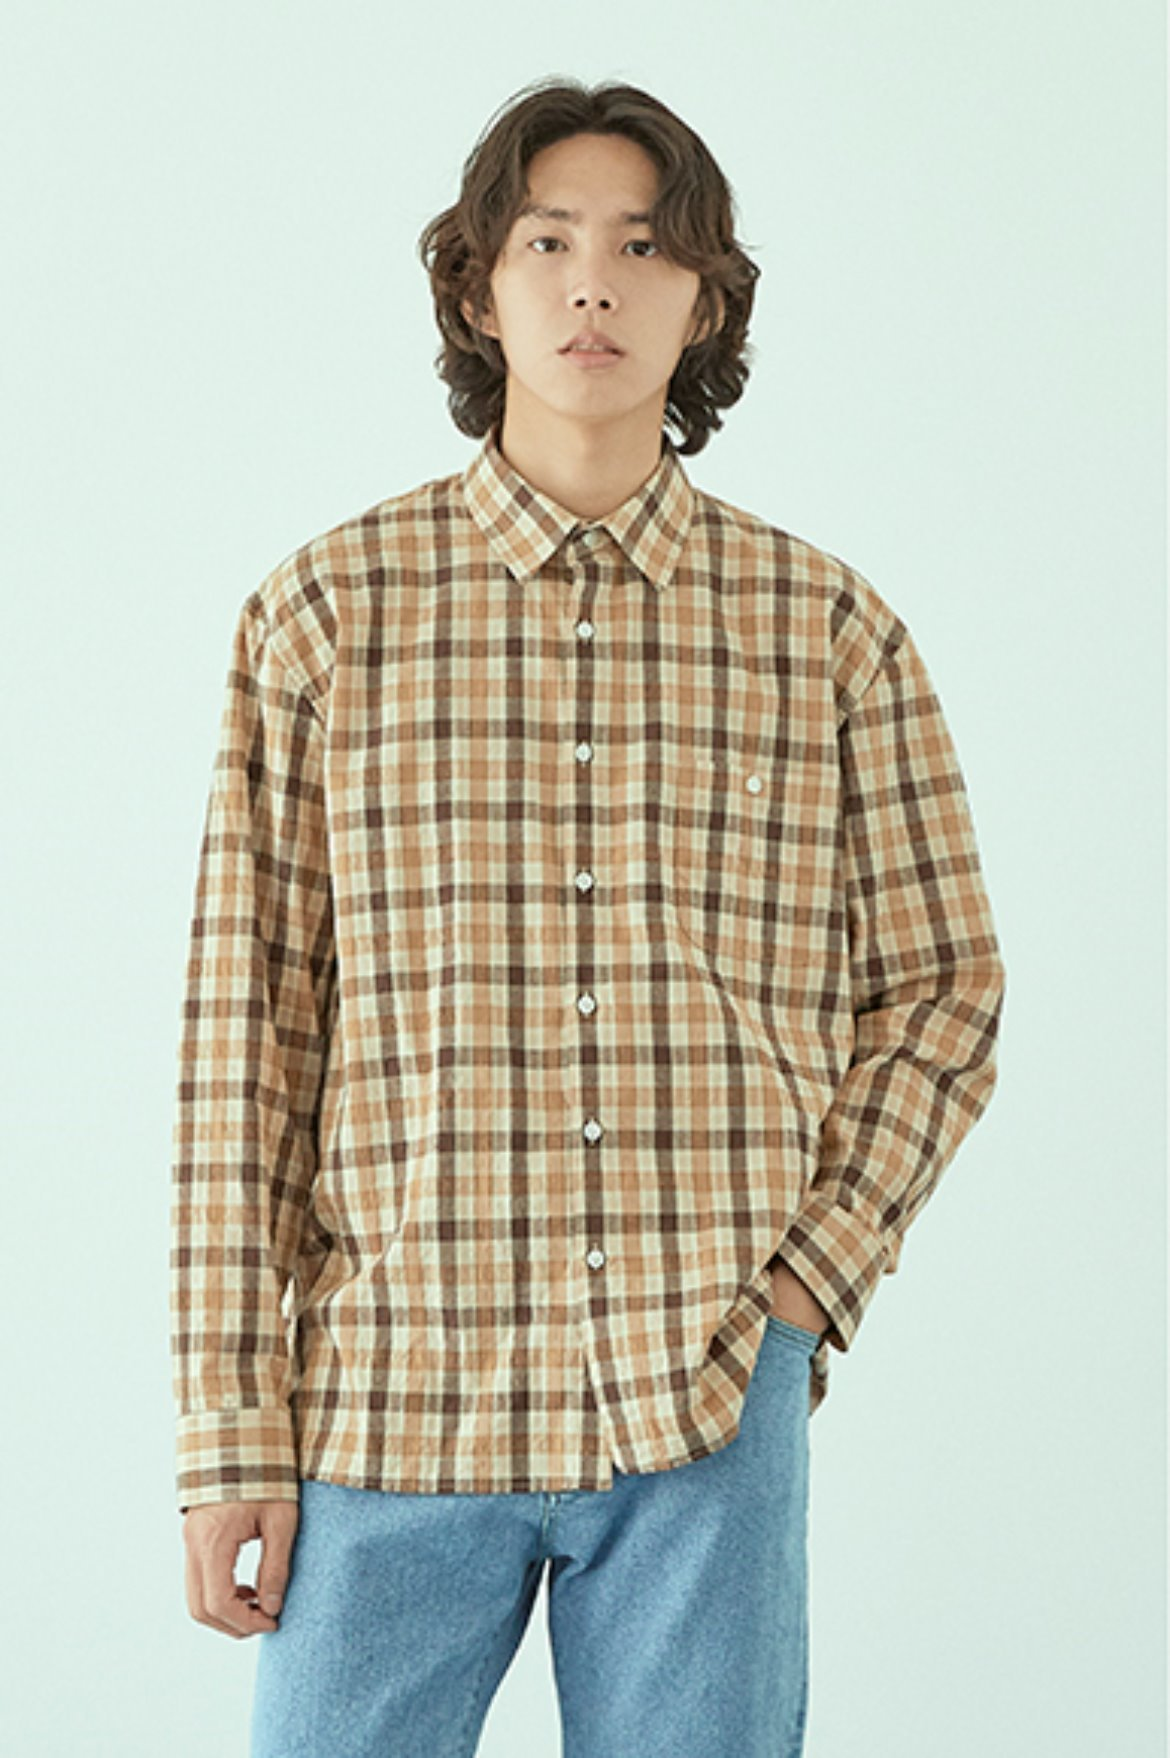 Box Gingham Check Shirts